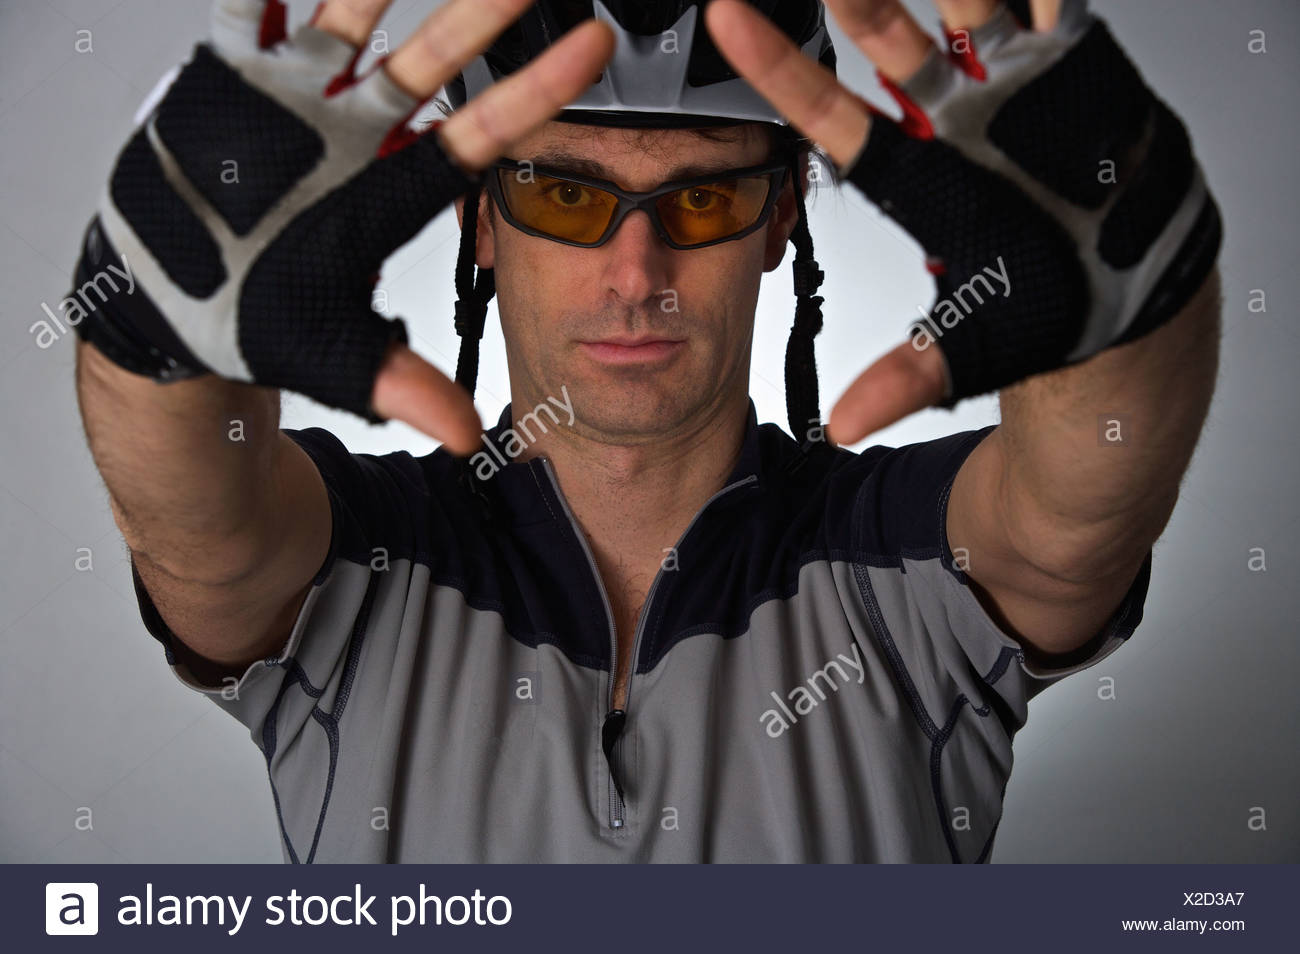 Bicyclist wearing helmet and gloves - Stock Image